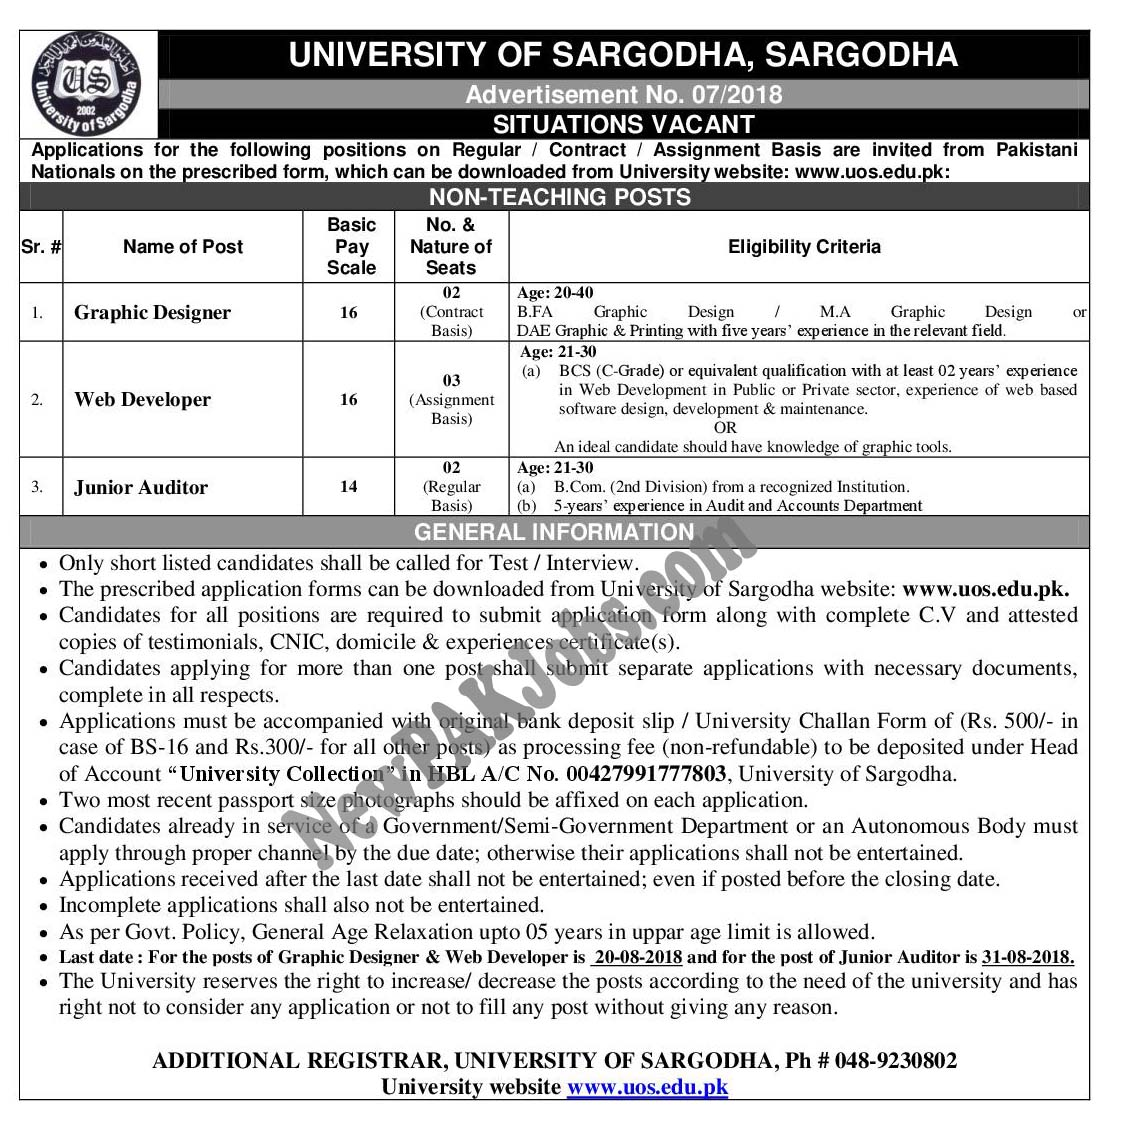 University of Sargodha (2018) Jobs Advertisement No 07/2018